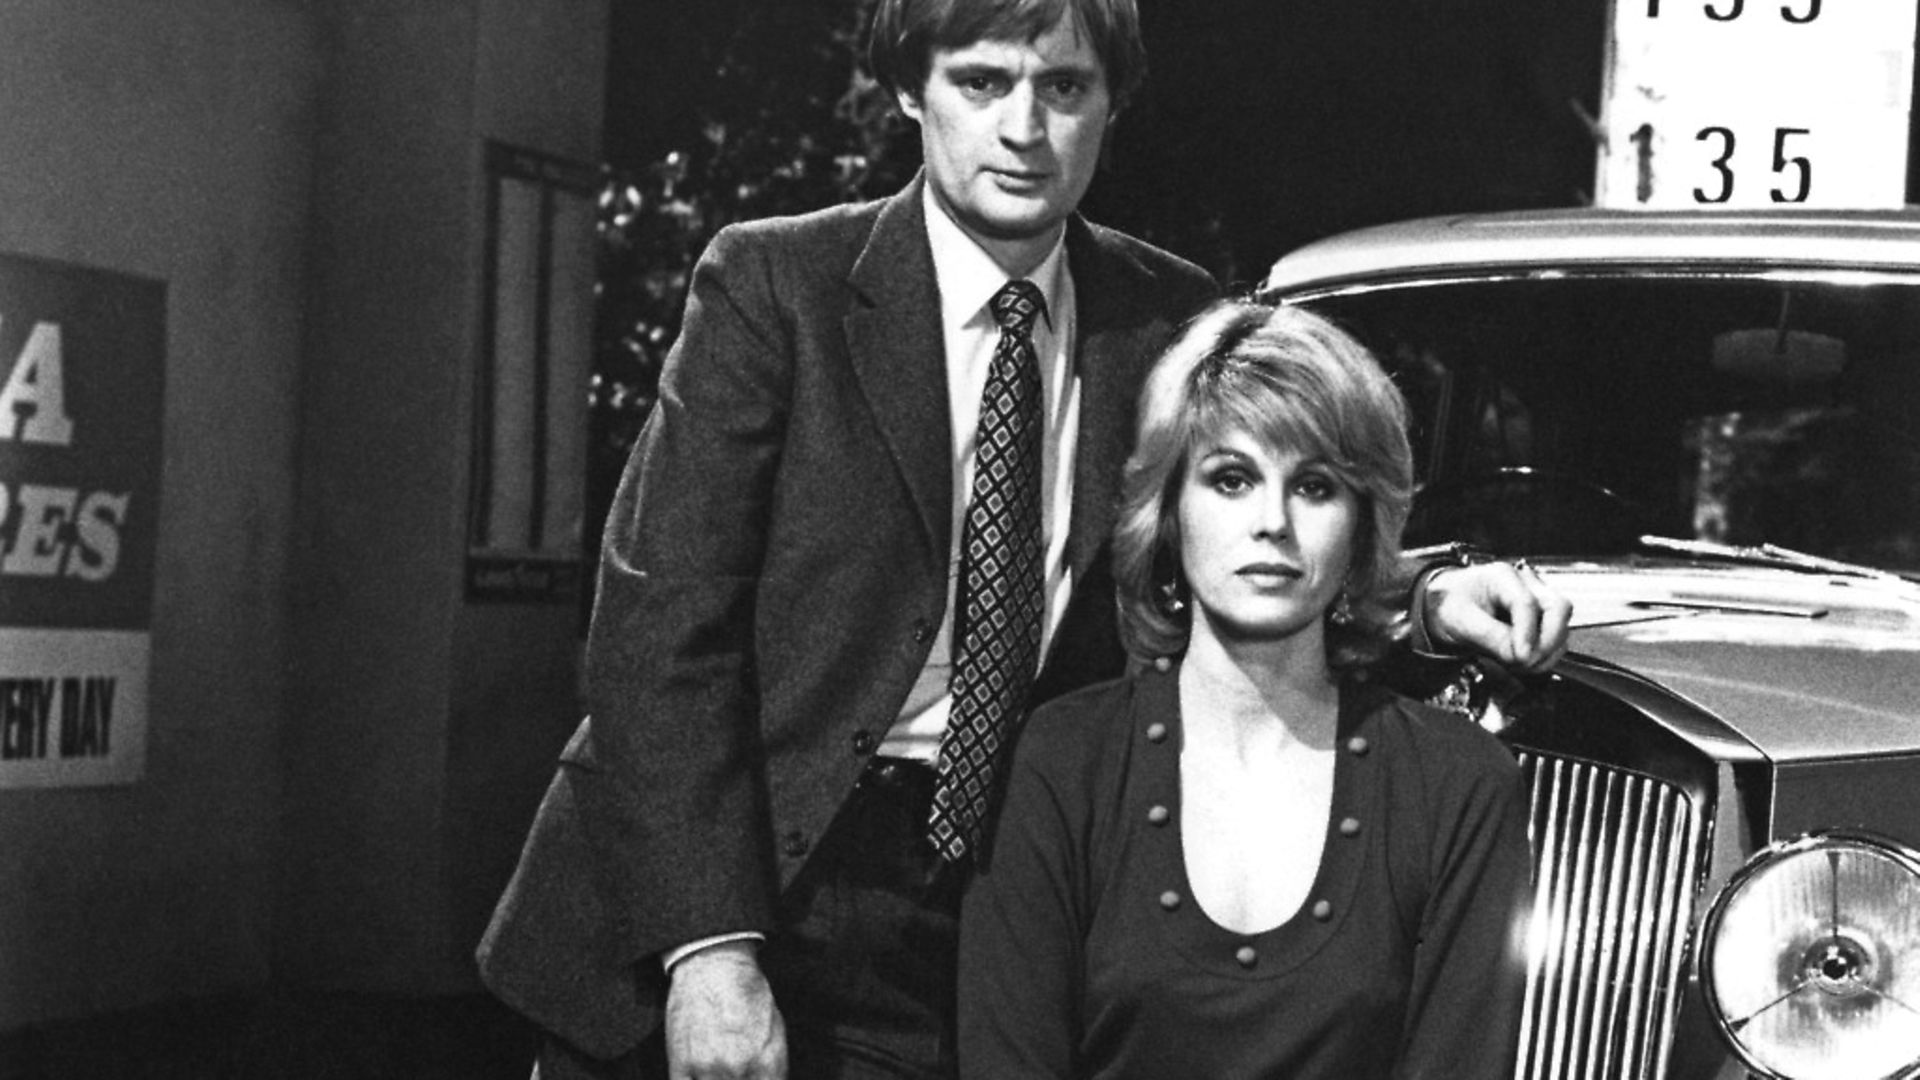 David McCallum and Joanna Lumley in science-fiction series 'Sapphire & Steel' (1980). Picture: Getty Images - Credit: Getty Images